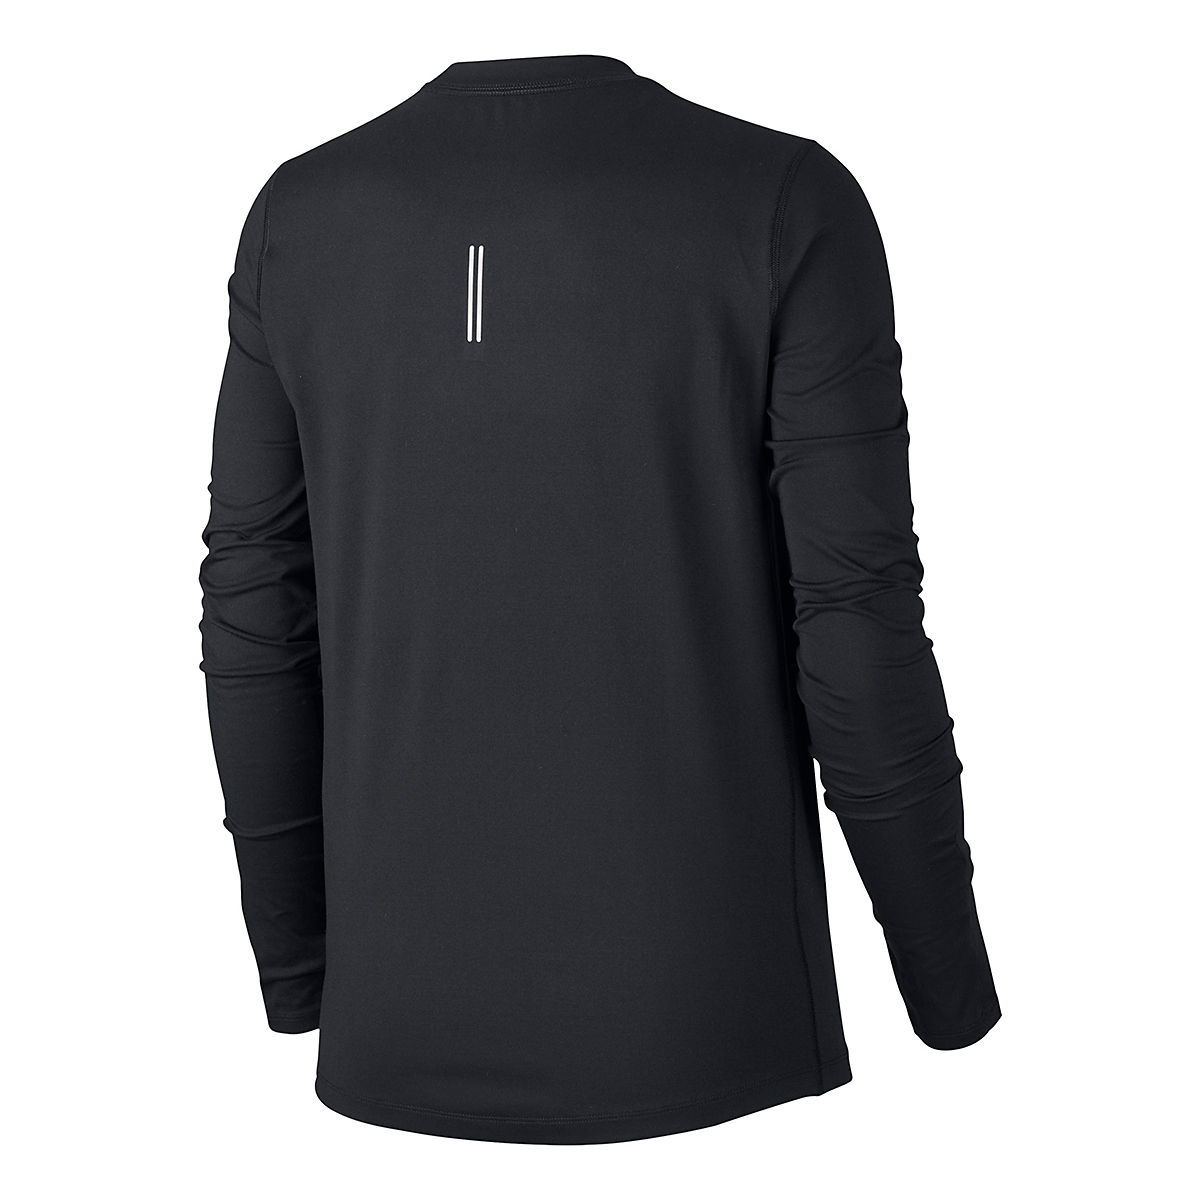 Women's Nike Element Crew Long Sleeve - Color: Black/Reflective Silver - Size: XS, Black/Reflective Silver, large, image 3